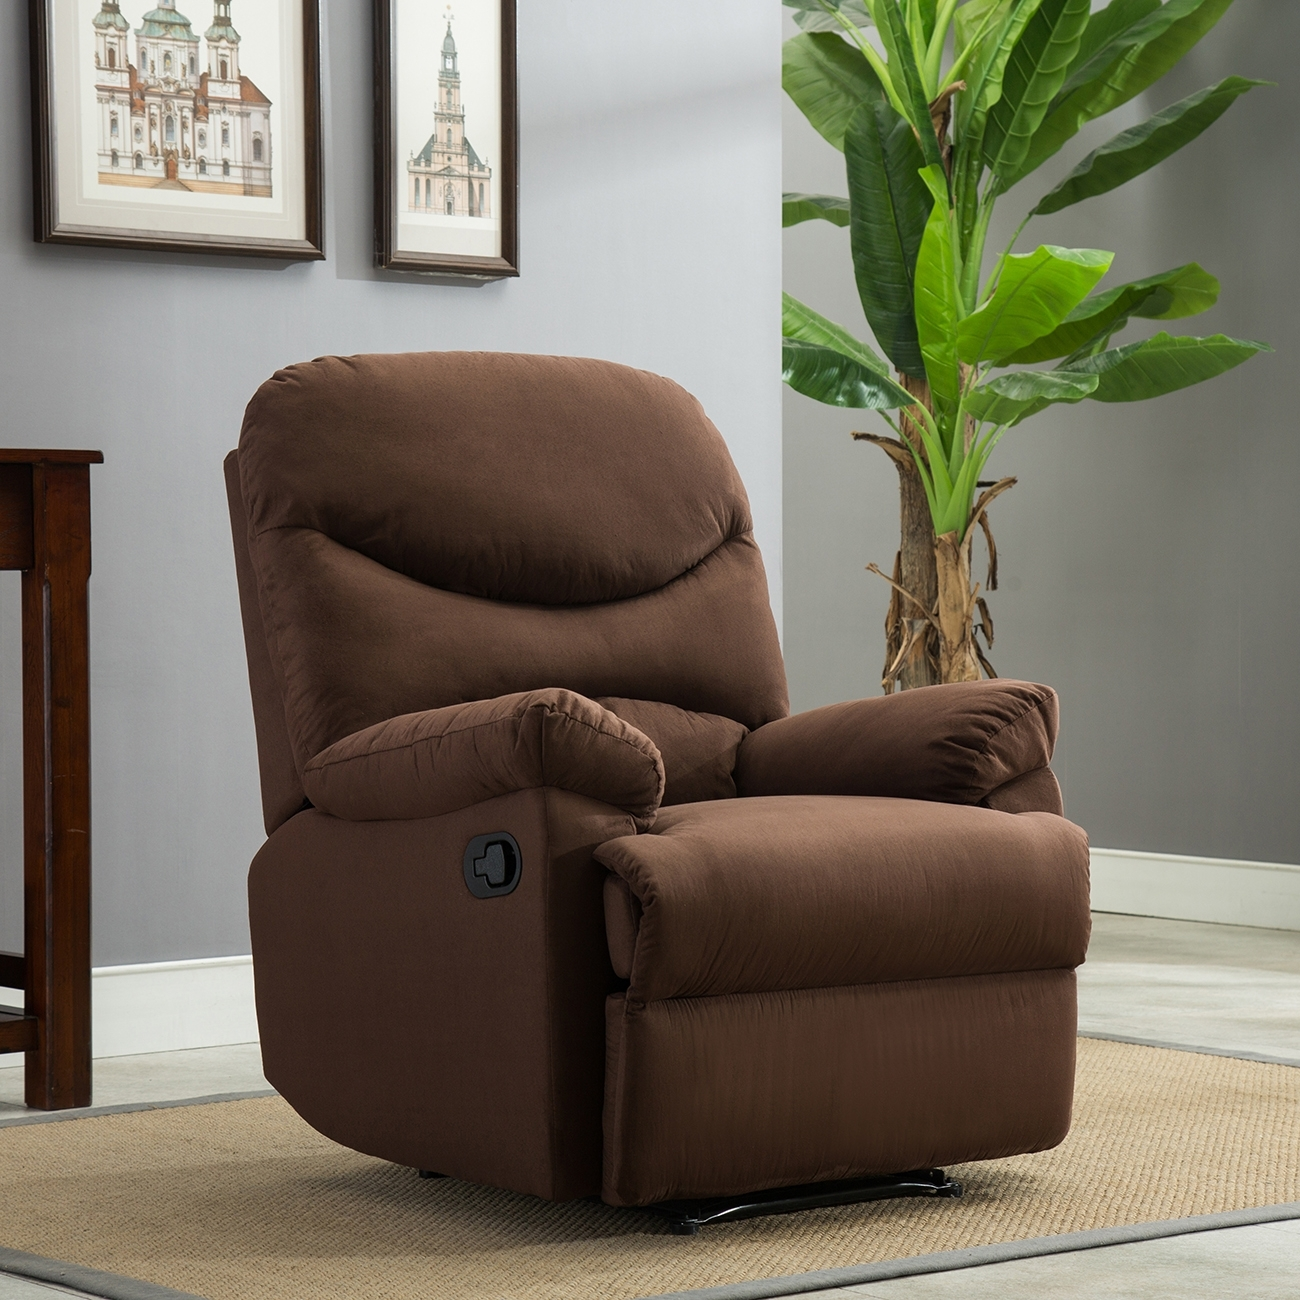 Comfy Man Cave Chairs